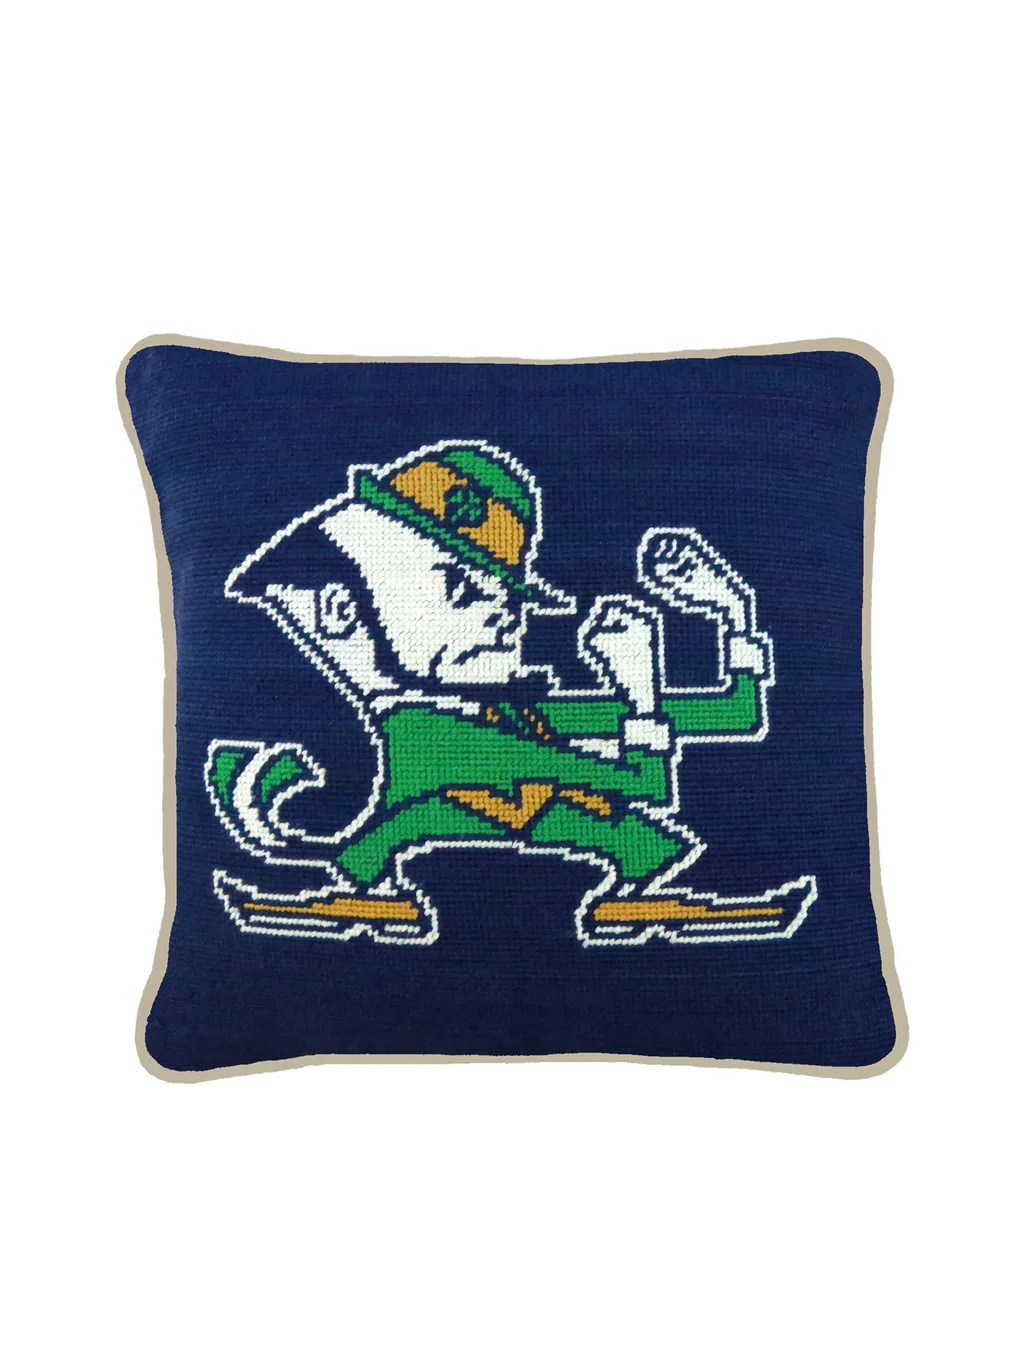 https westontable com products smathers branson college needlepoint pillows